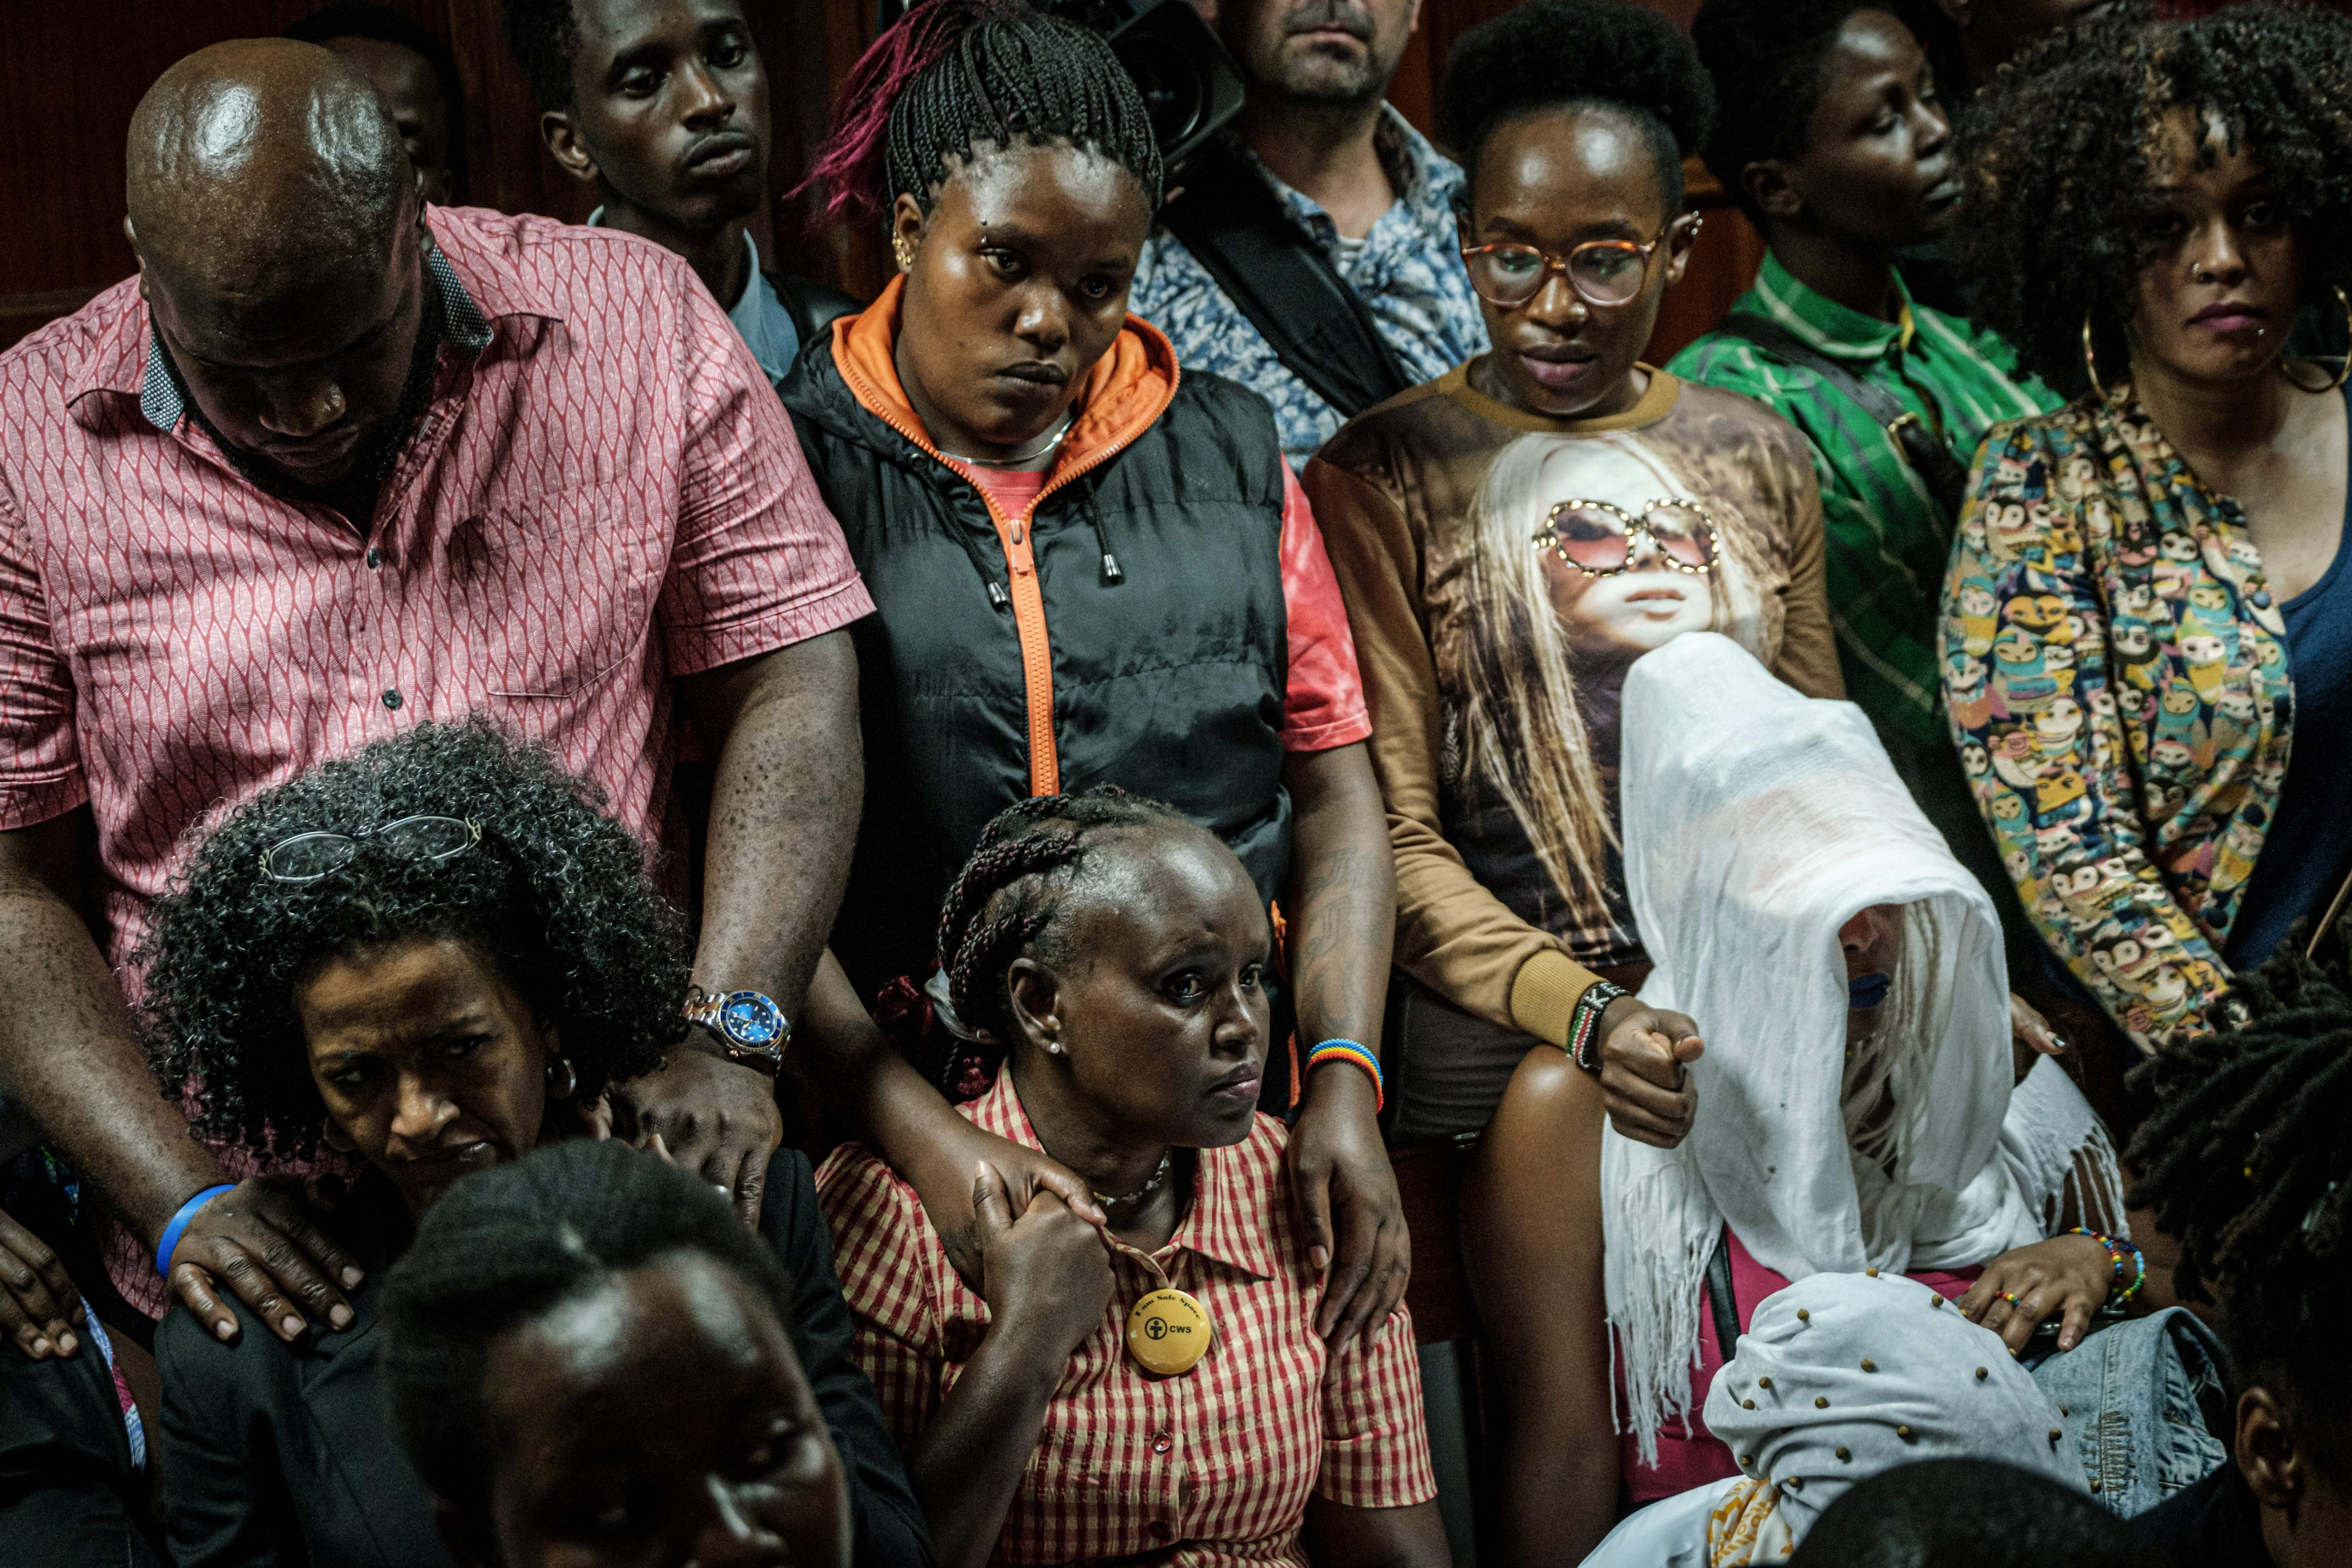 LGBTQ community members and supporters listen to a verdict on scrapping laws criminalising homosexuality at the Milimani high court in Nairobi, Kenya, on May 24, 2019. (YASUYOSHI CHIBA/AFP/Getty Images)